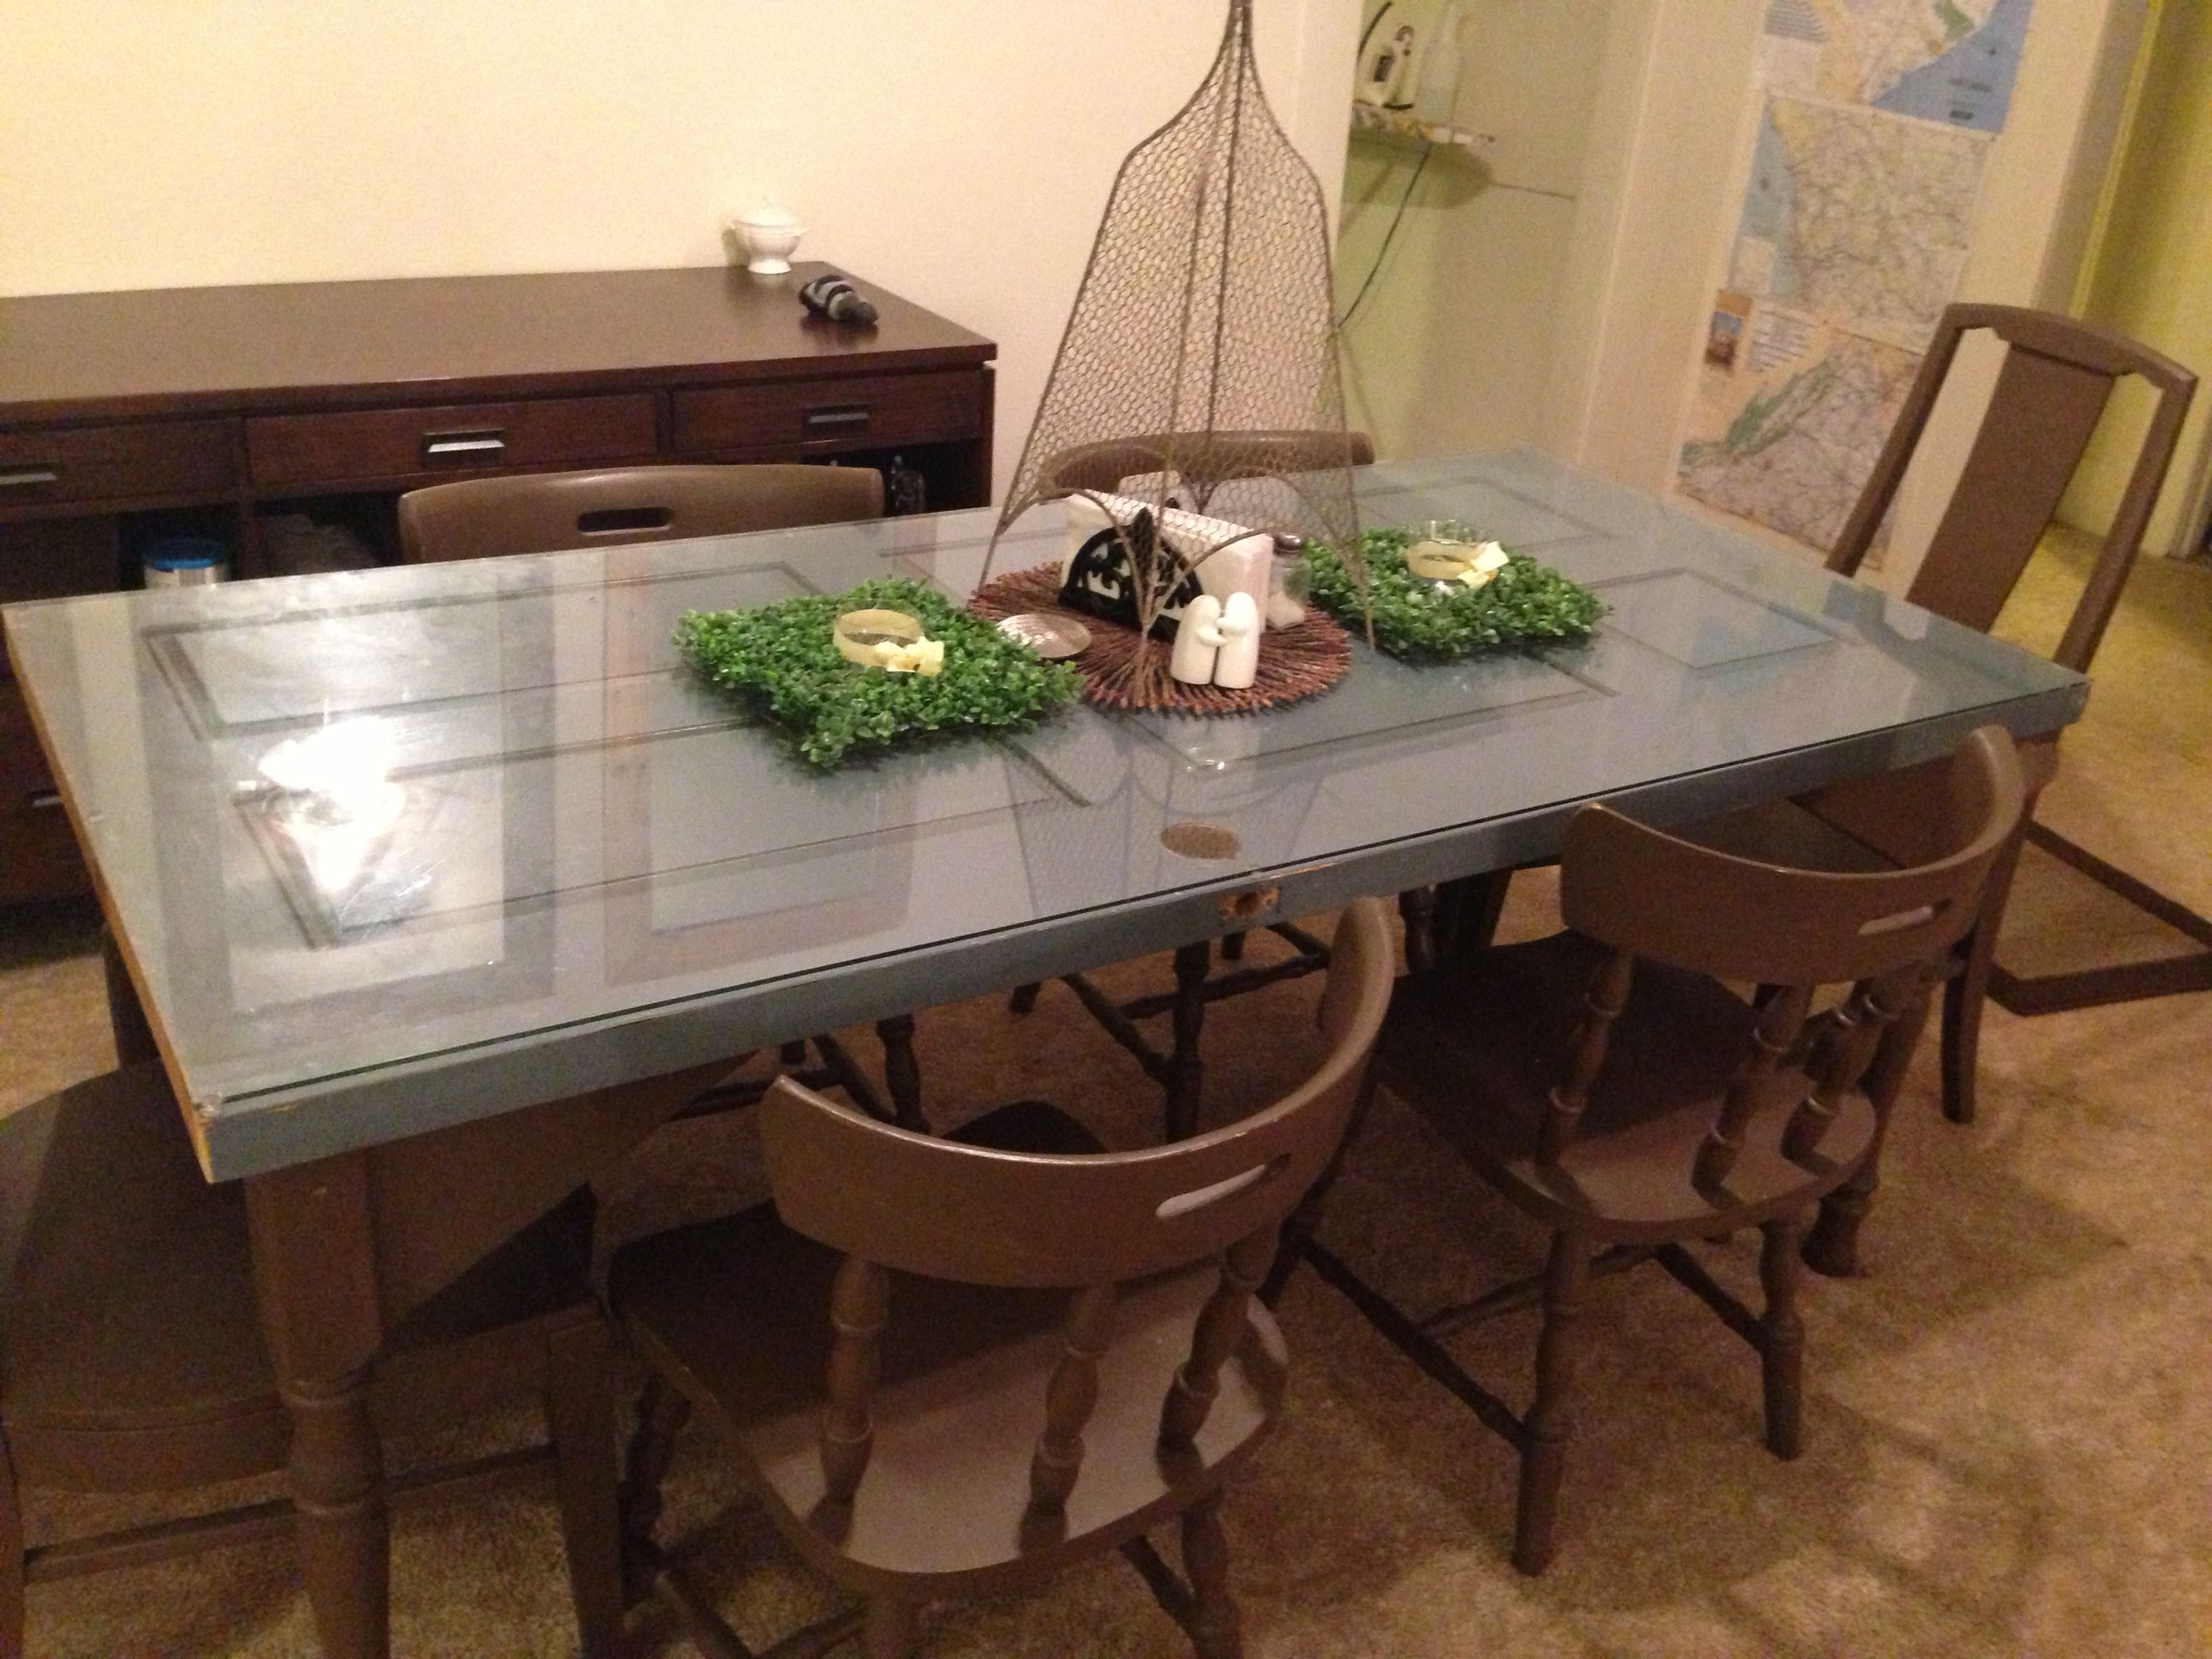 Made Our Dining Room Table Out Of An Old Door Projects To Try Pinterest Dining Room Table